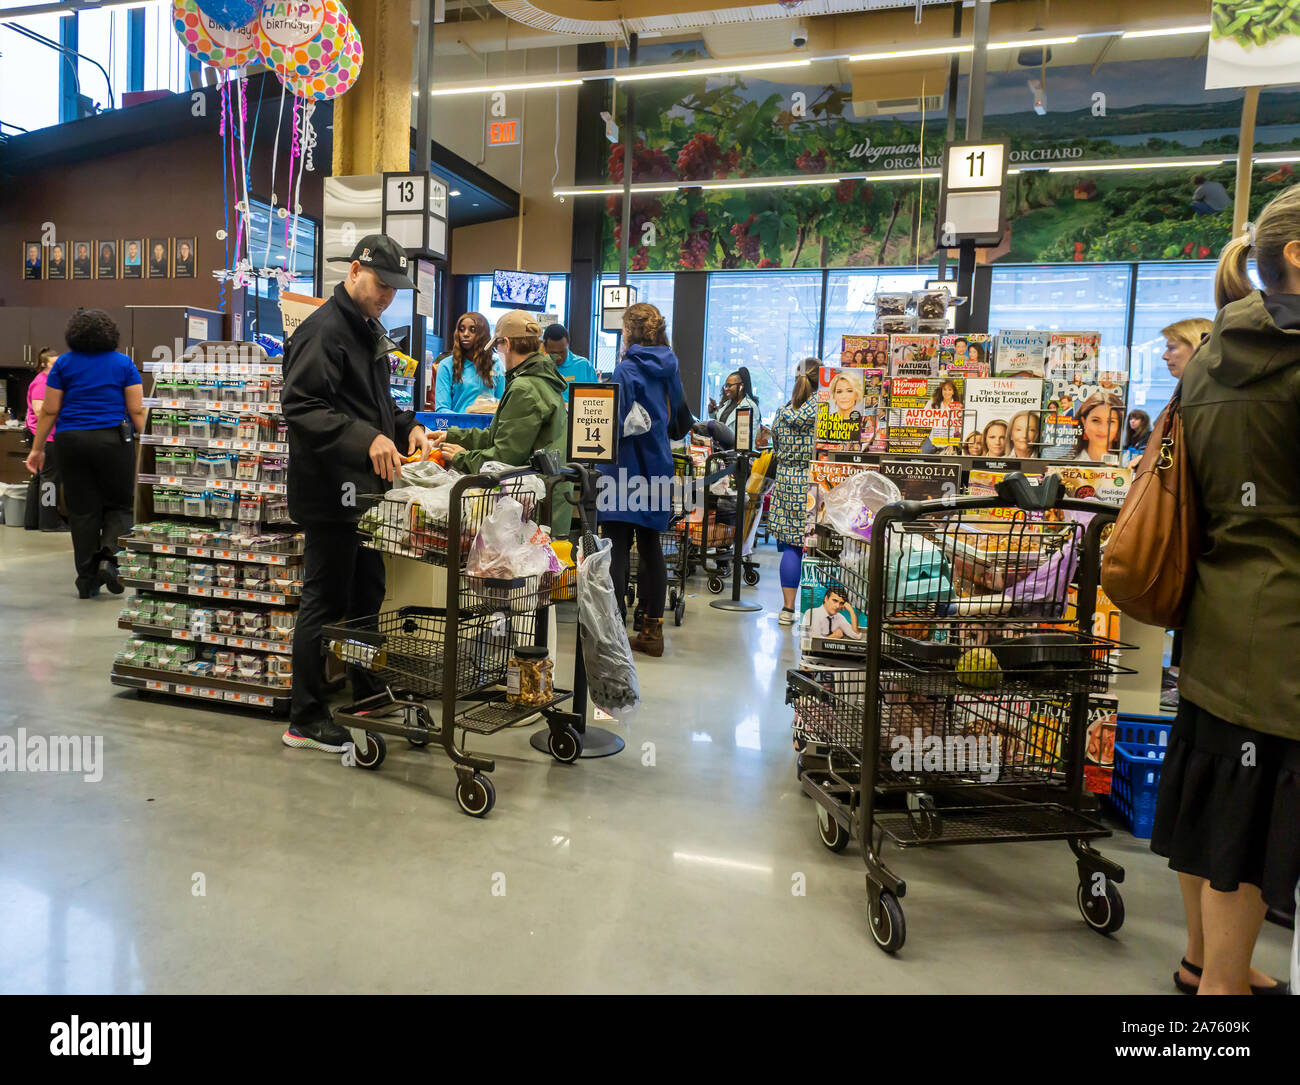 Wegmans Grocery Store High Resolution Stock Photography And Images Alamy